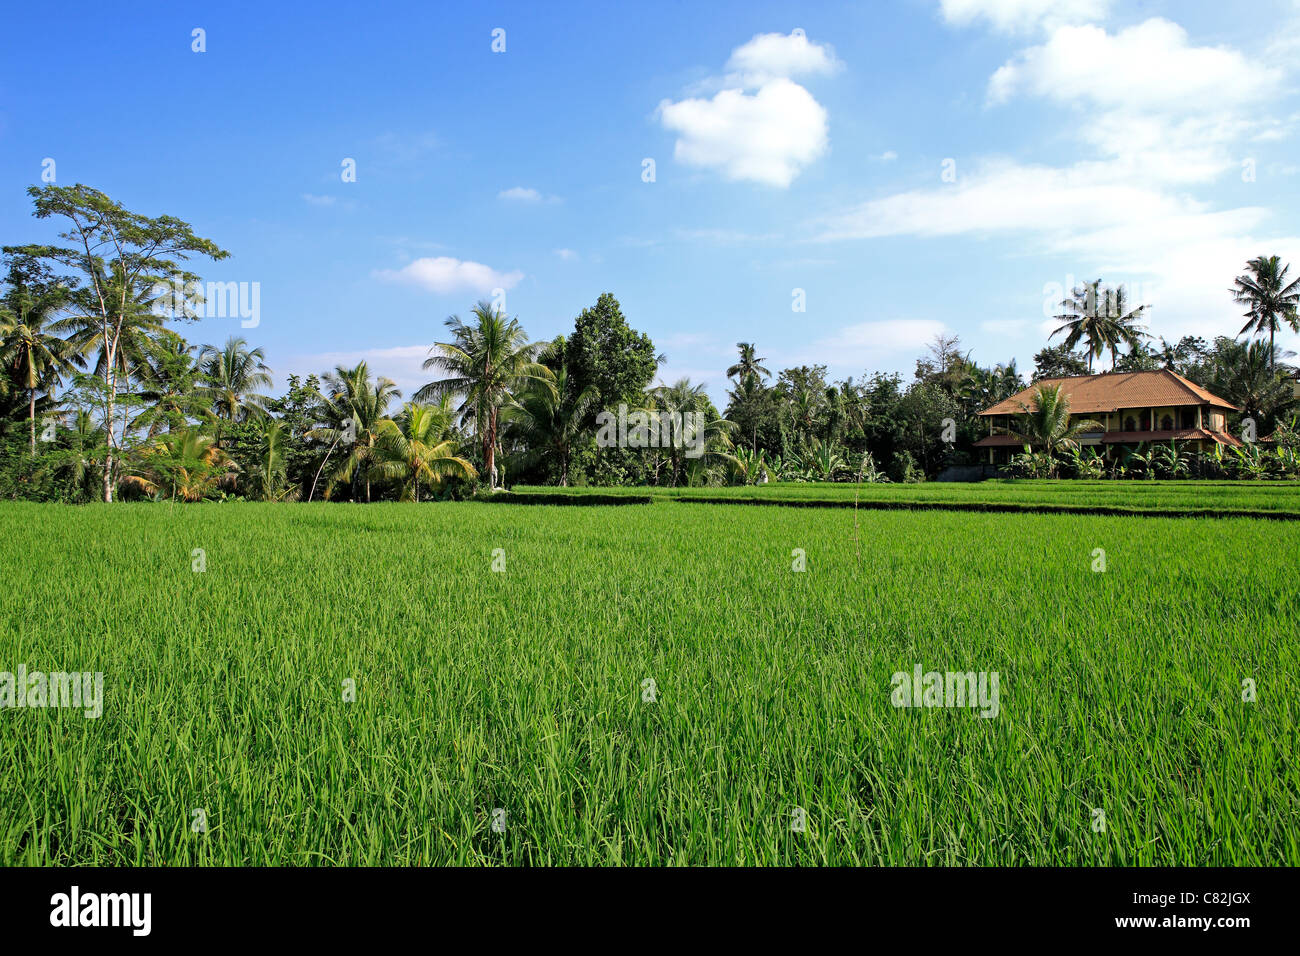 A lush green rice paddy with a Balinese house. Ubud, Bali, Indonesia - Stock Image